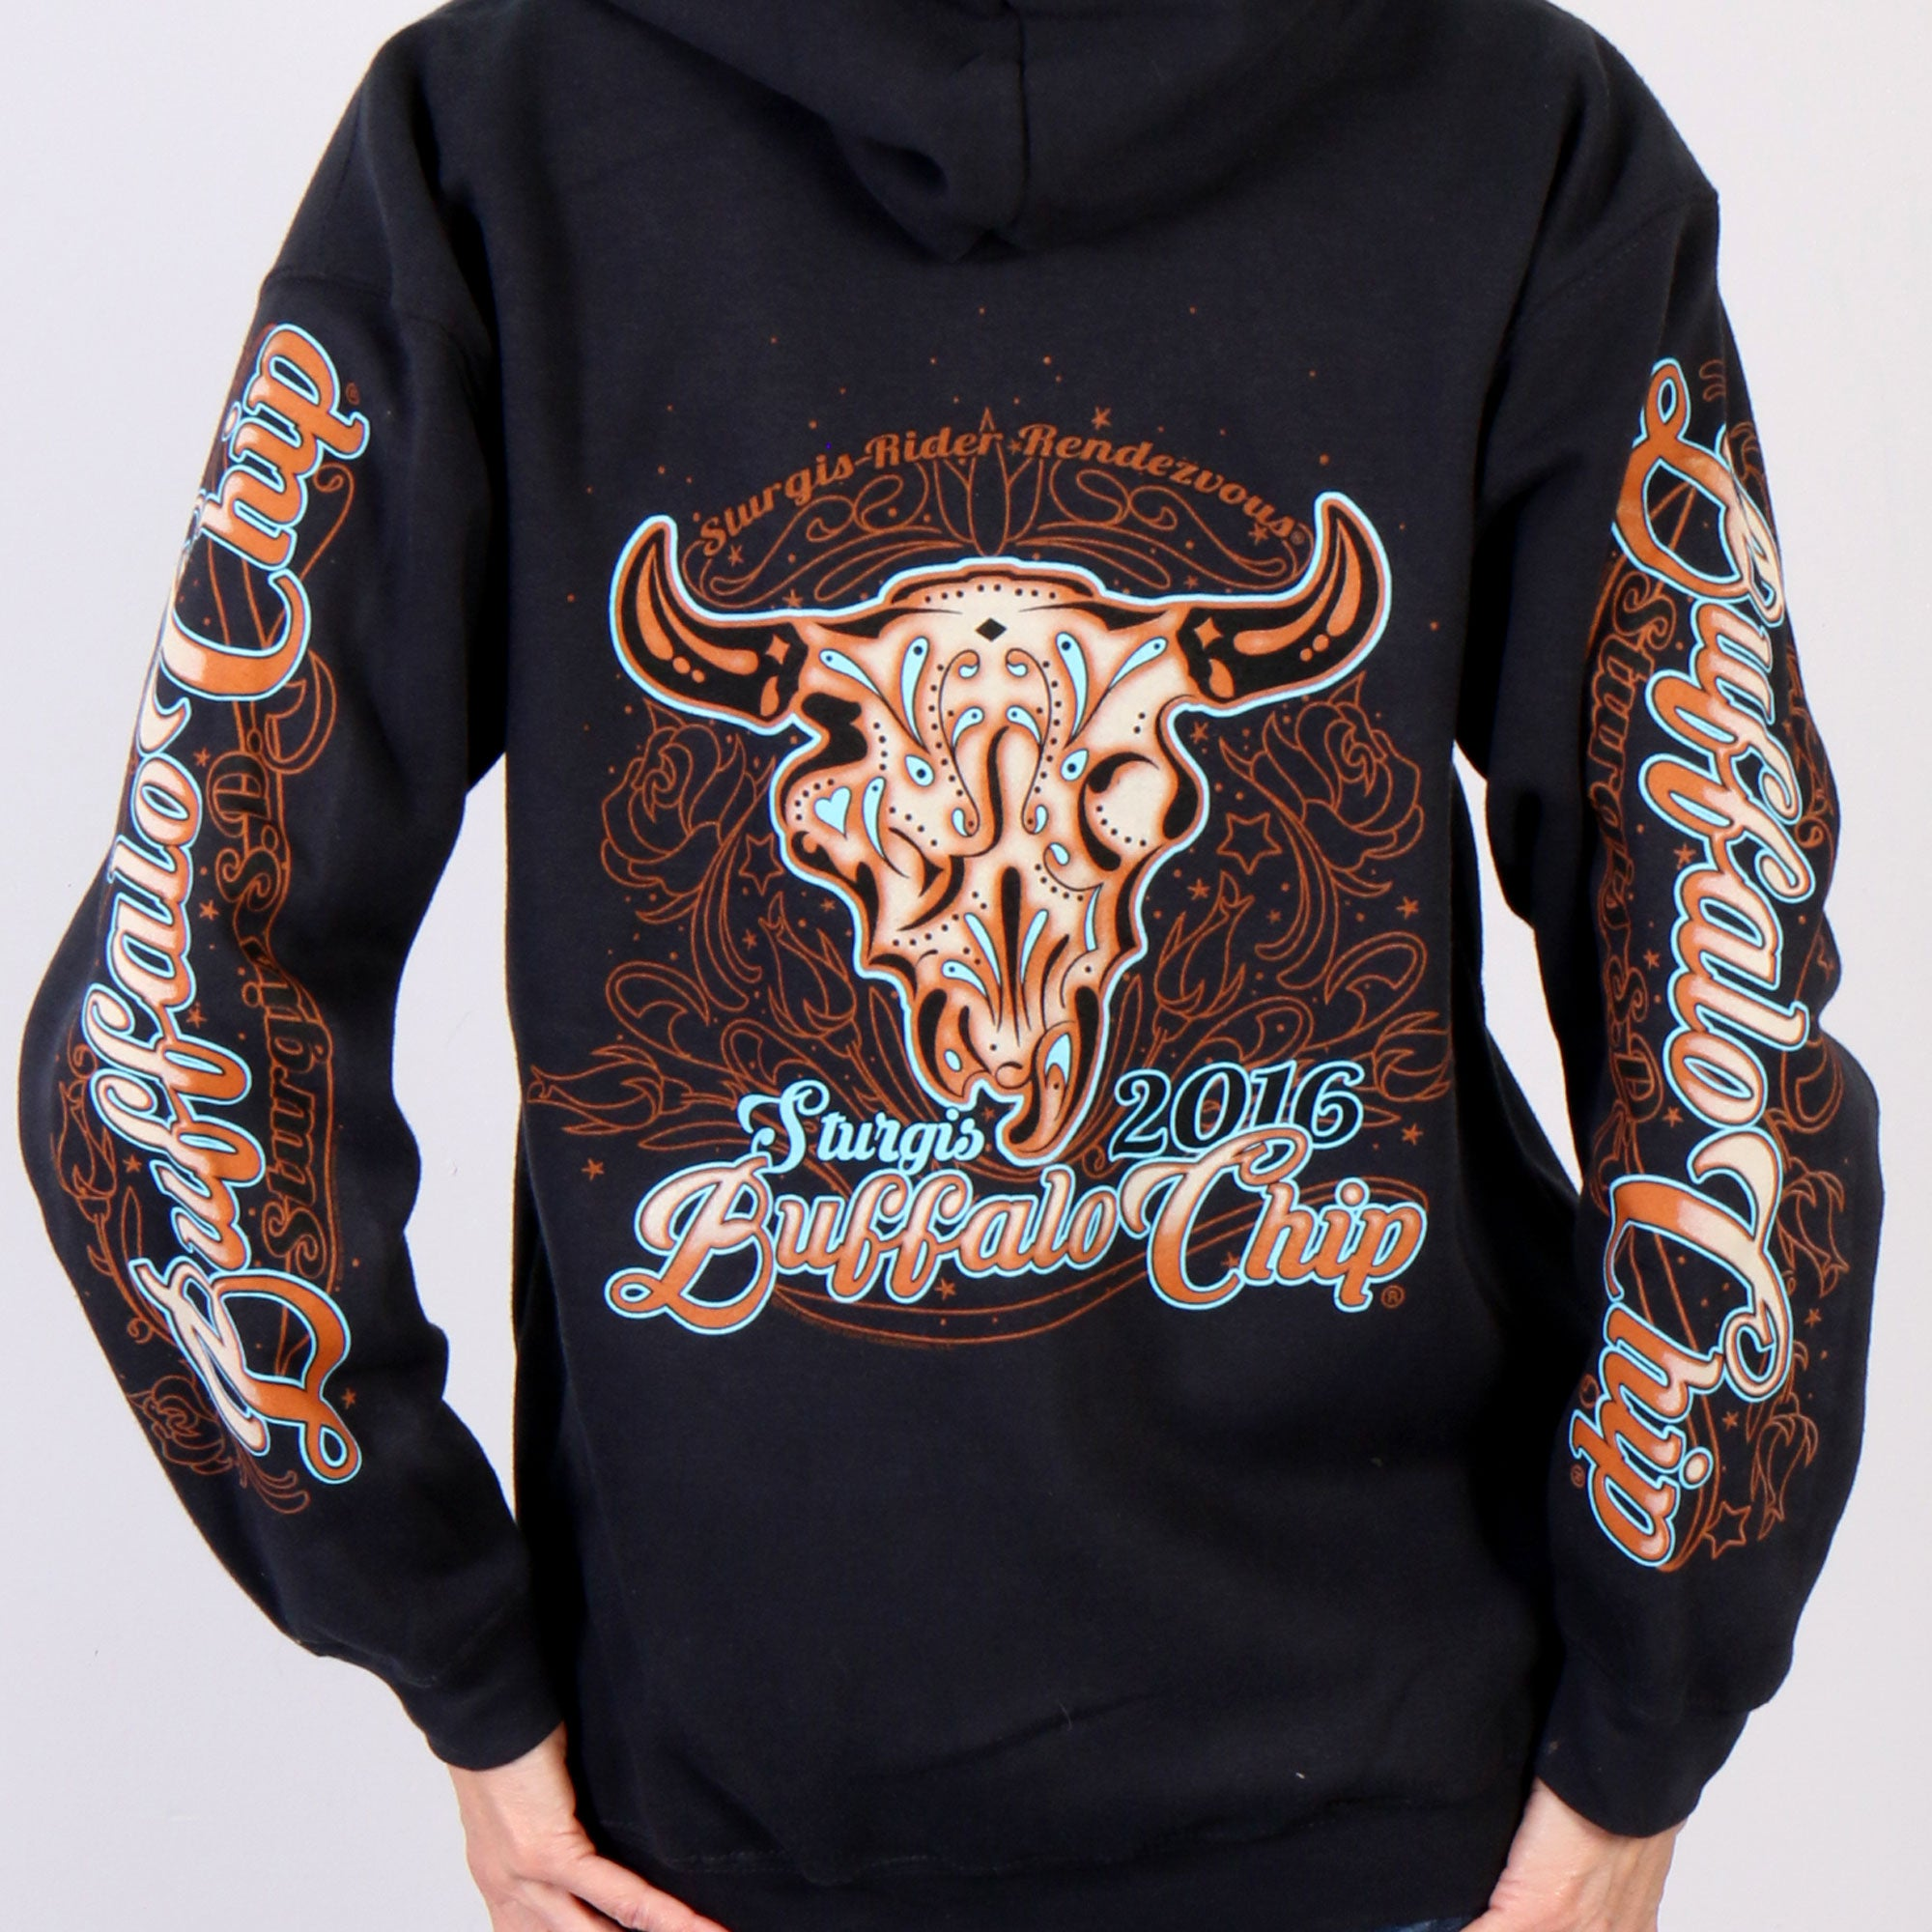 Official 2016 Buffalo Chip Zip-Up Hooded Sweat Shirt